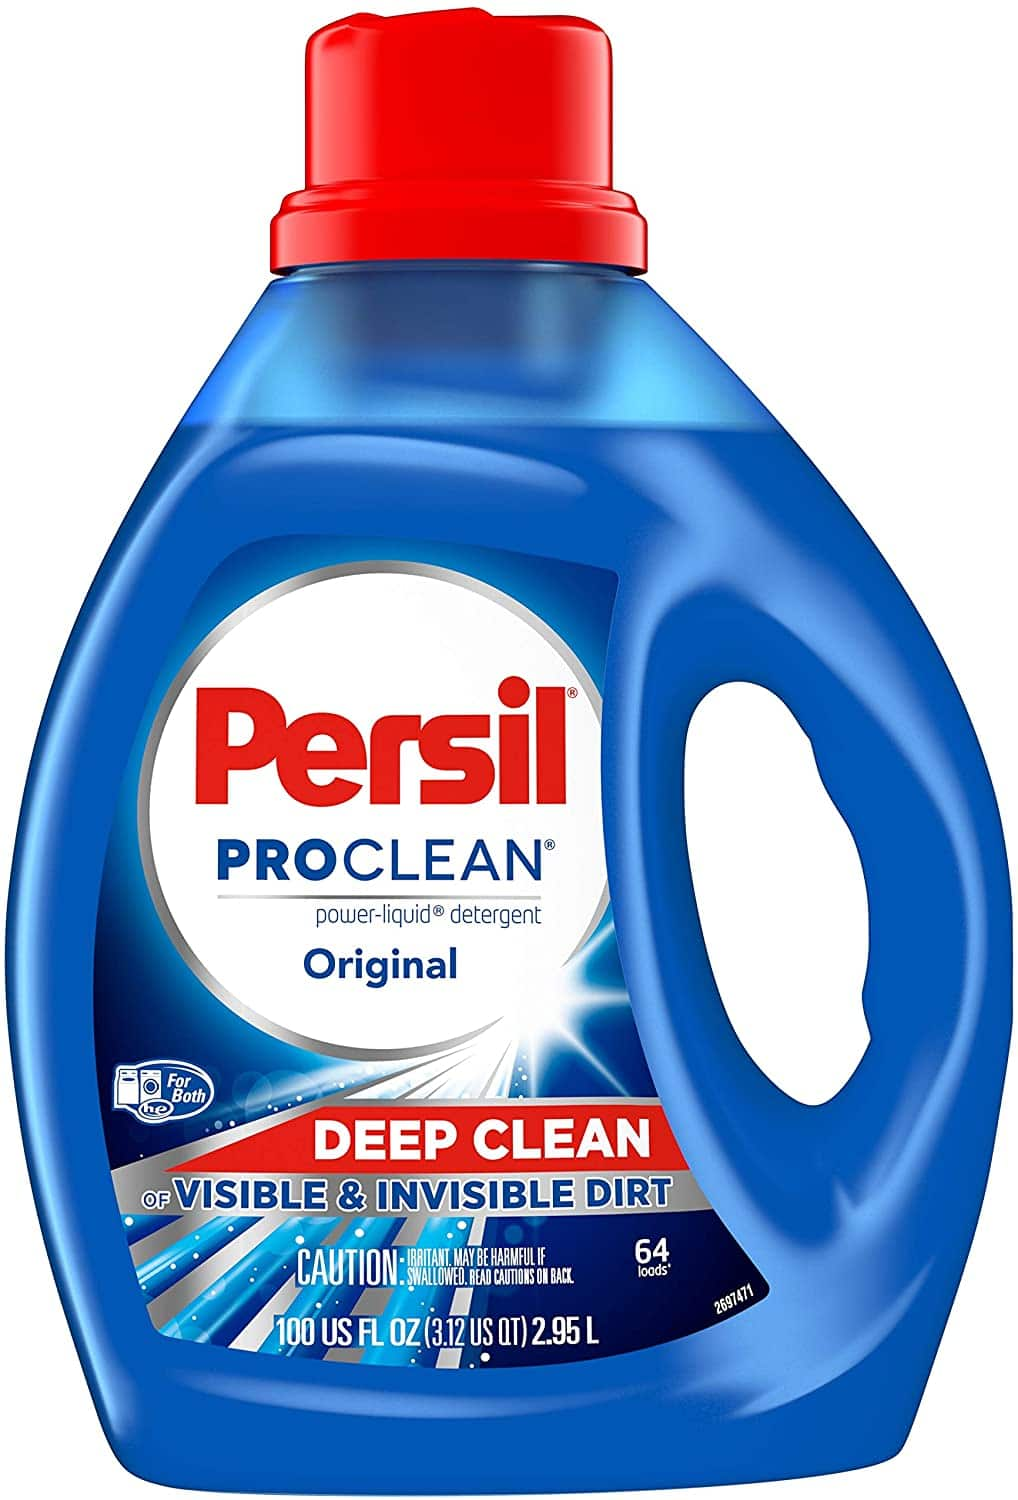 100-Oz Persil ProClean Liquid Laundry Detergent (Original or Intense Fresh) $8.39 & More + Free Shipping w/ Prime or $25+